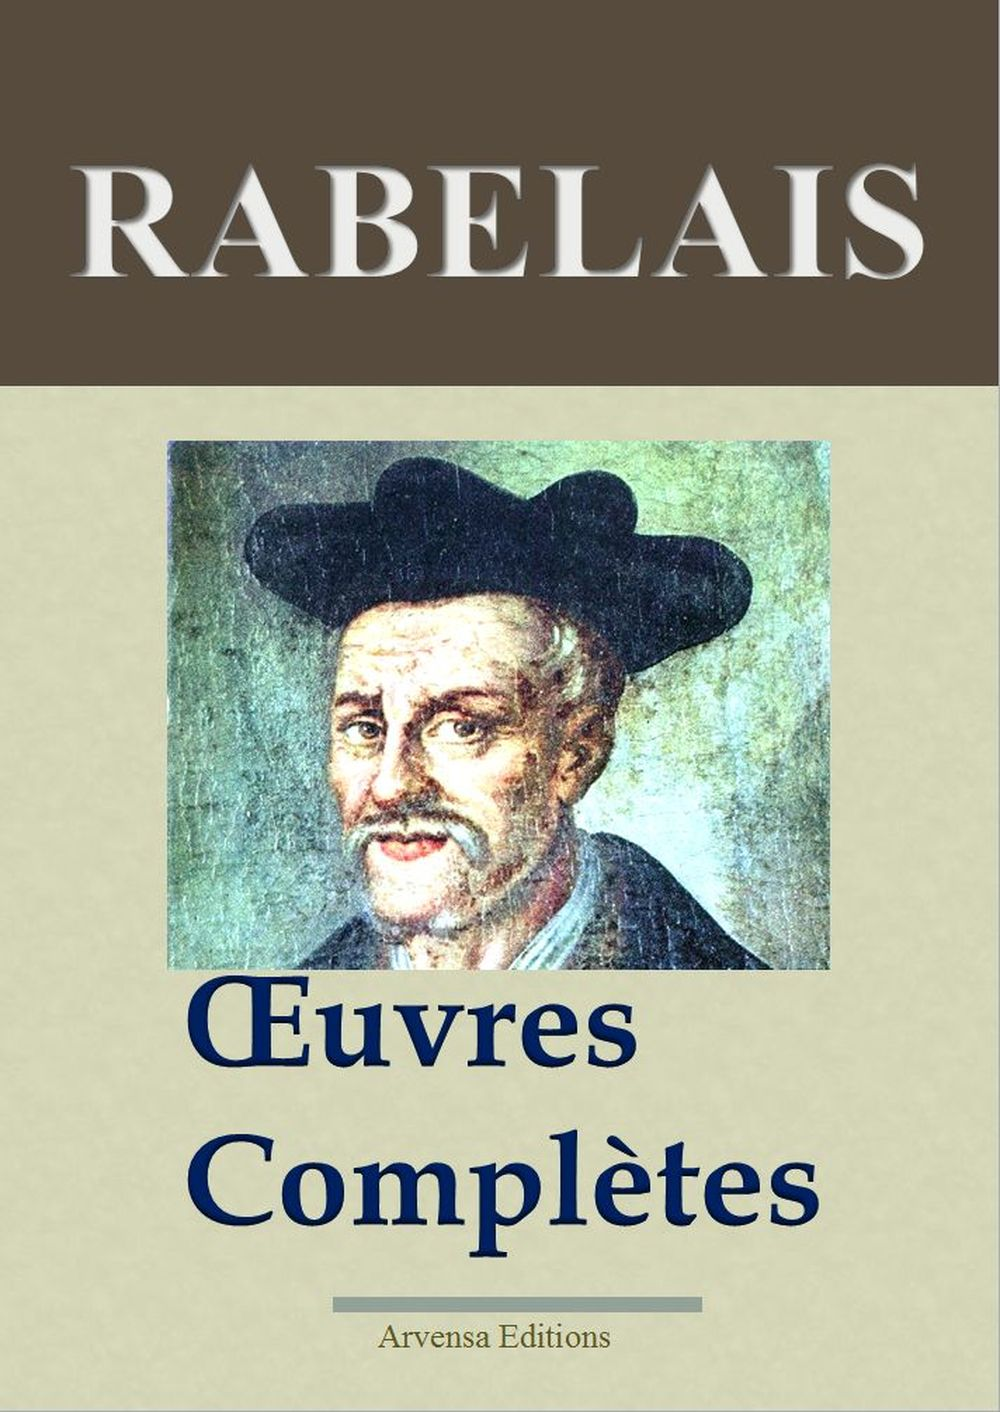 Rabelais - Oeuvres Complètes